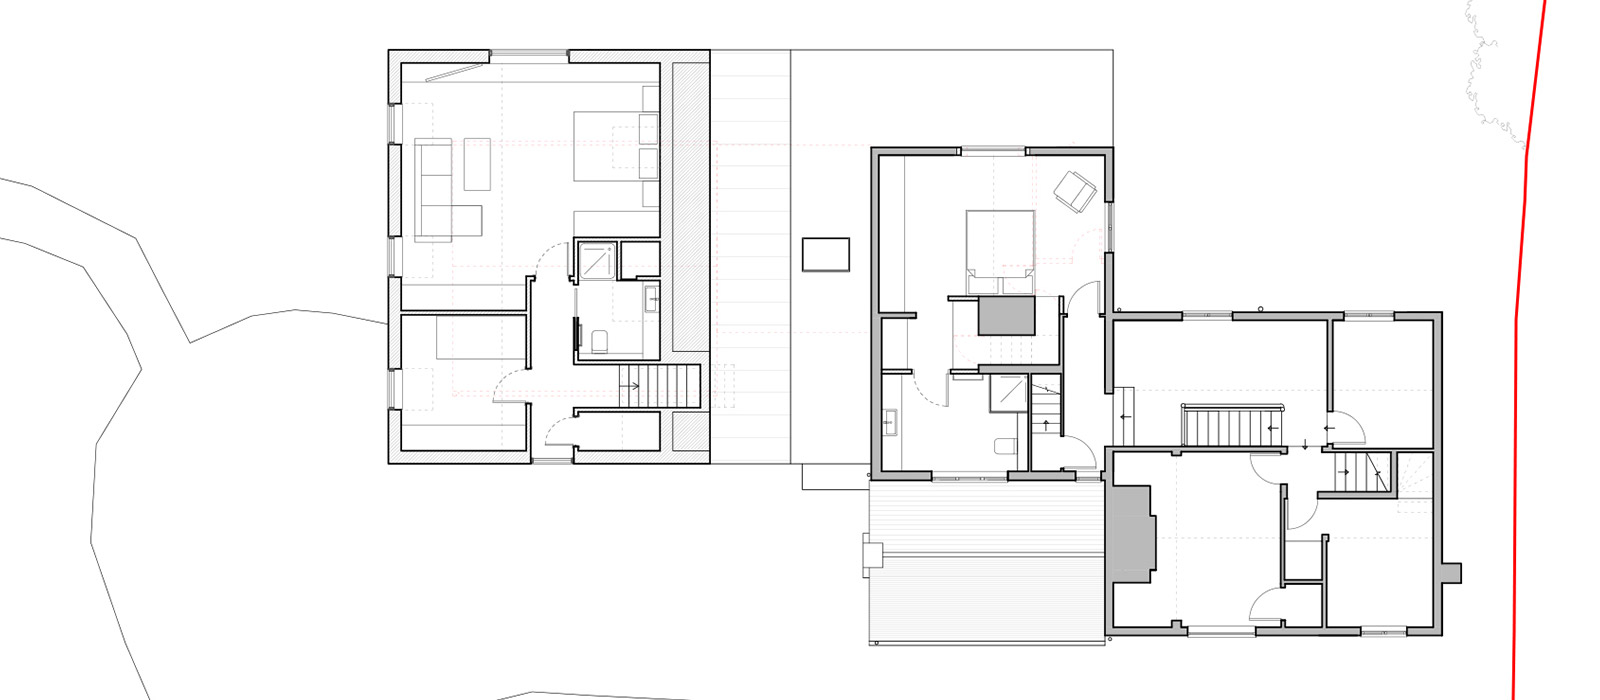 gyd-architecture | Proposed first floor plan